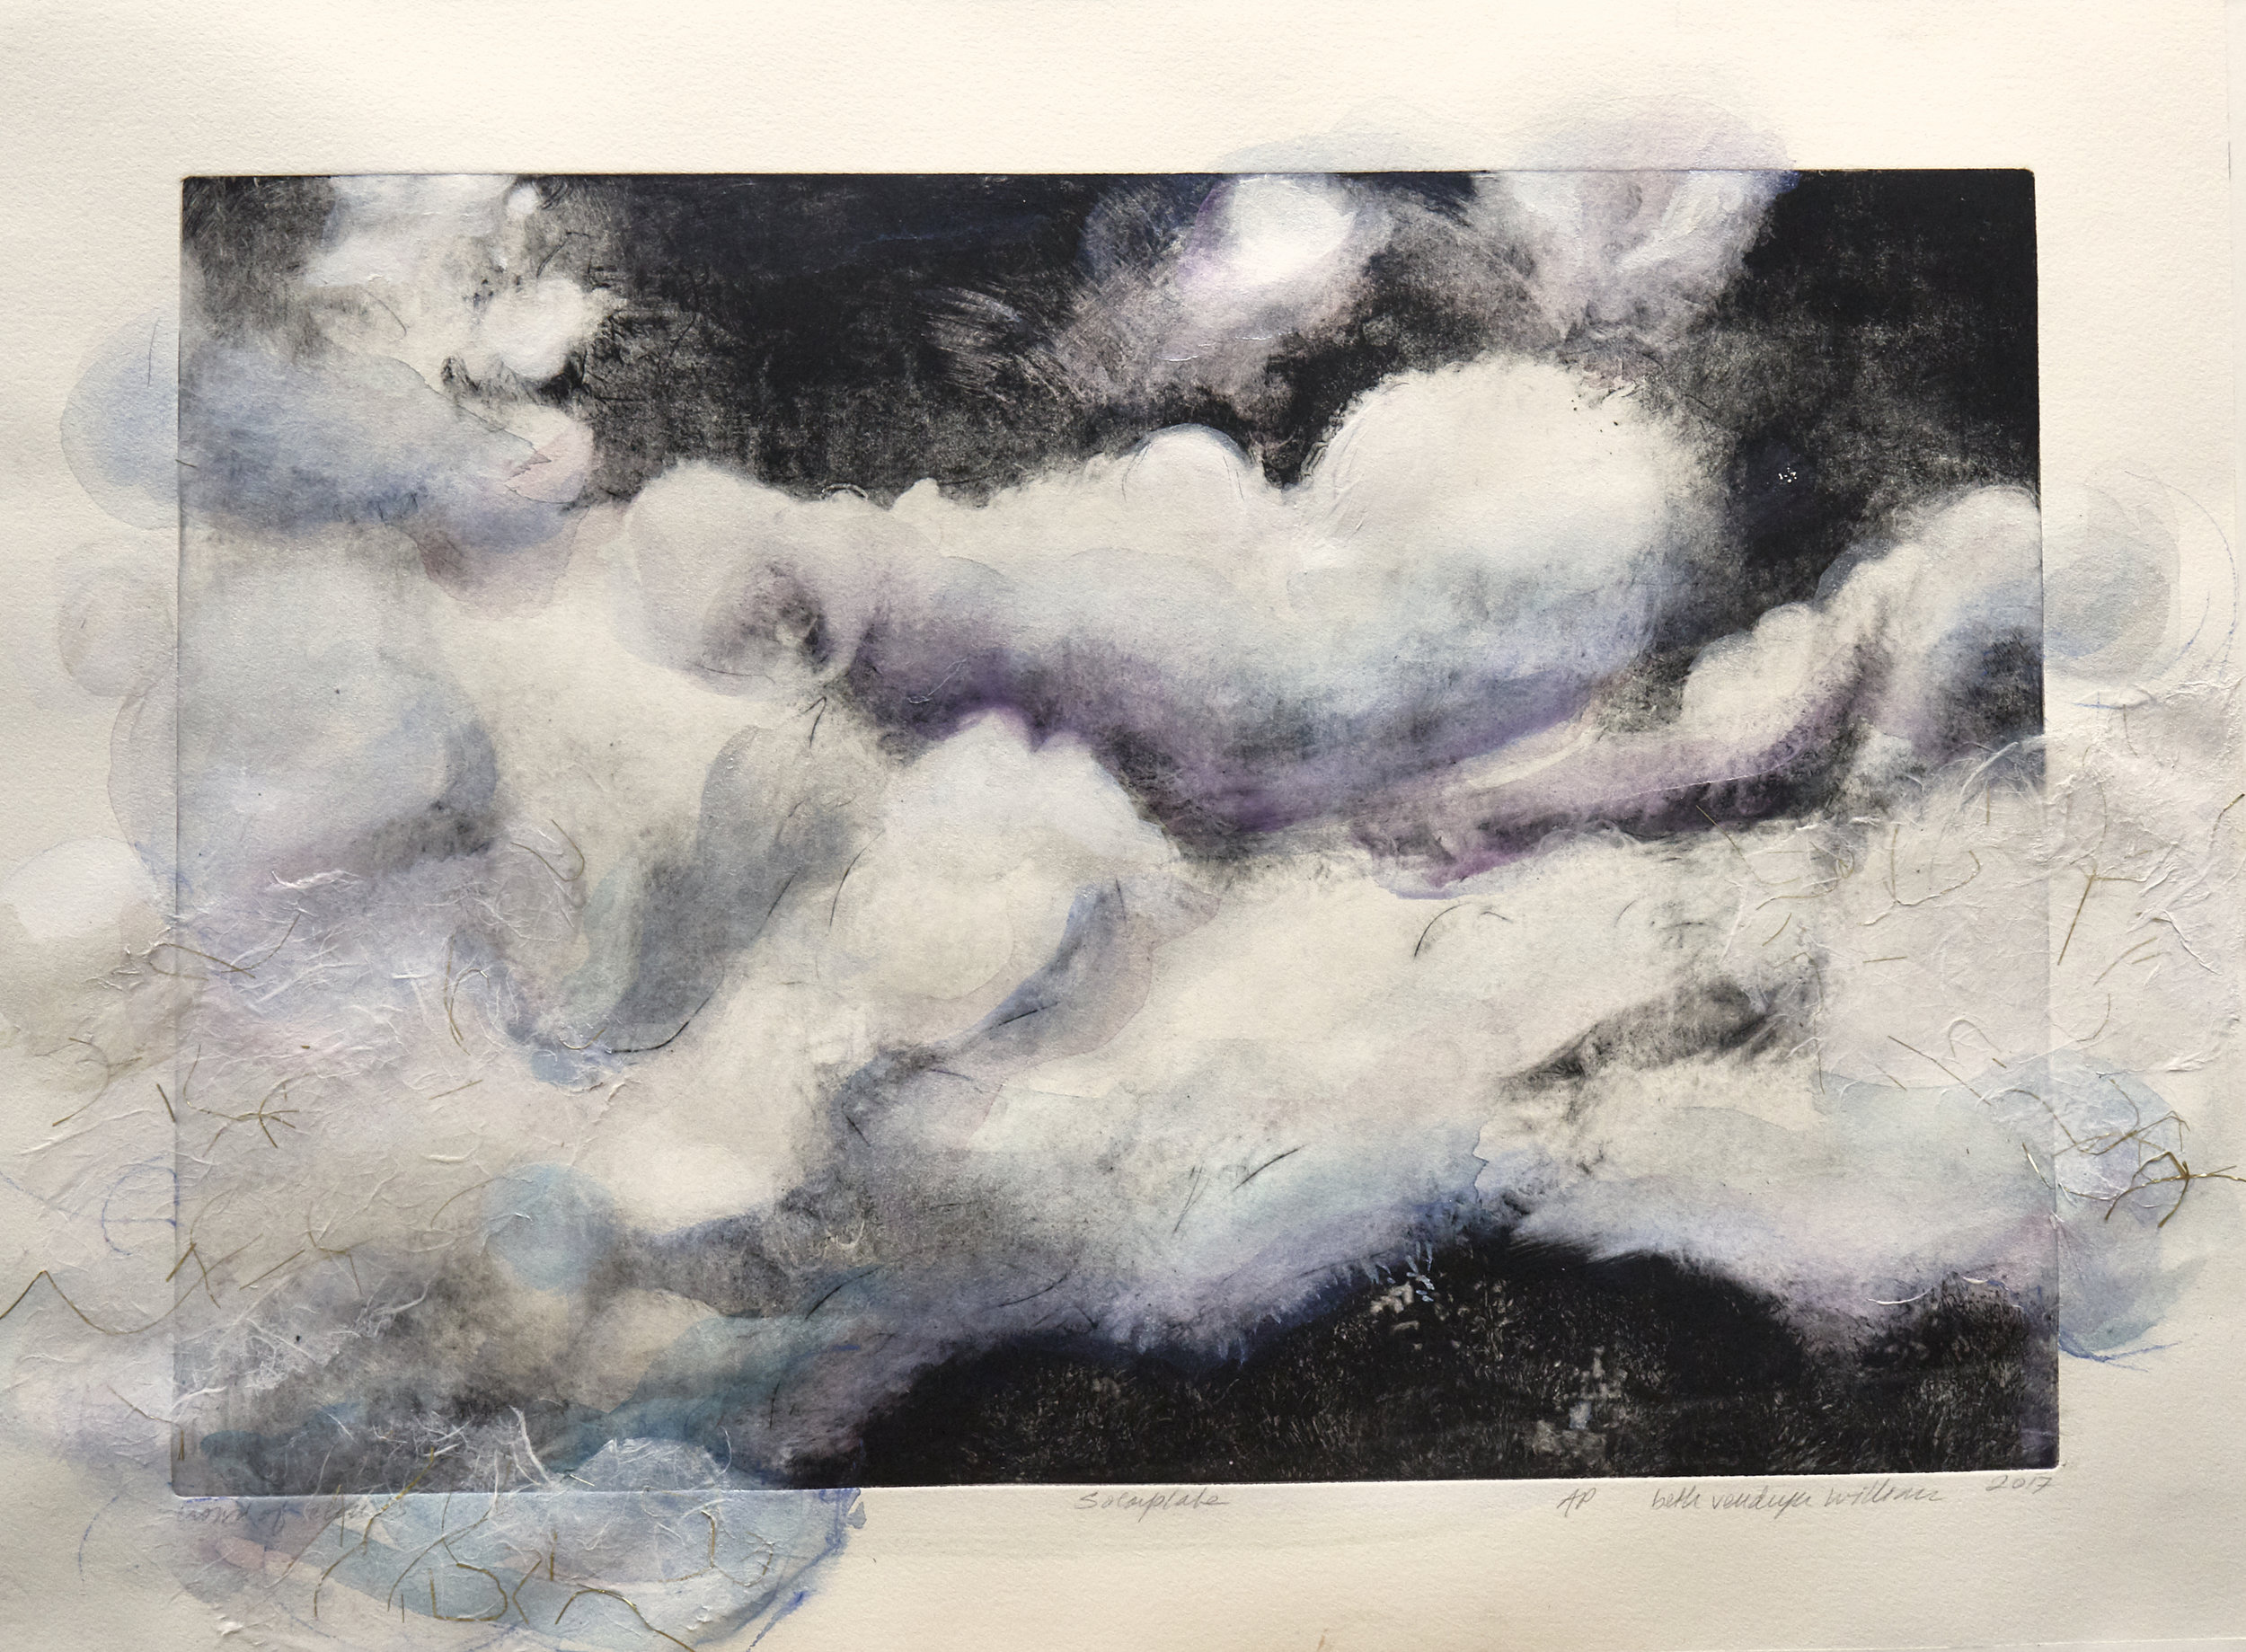 let-the+clouds+in_953_2018©bvendryeswilliams18©beth+vendryes+williams.jpg